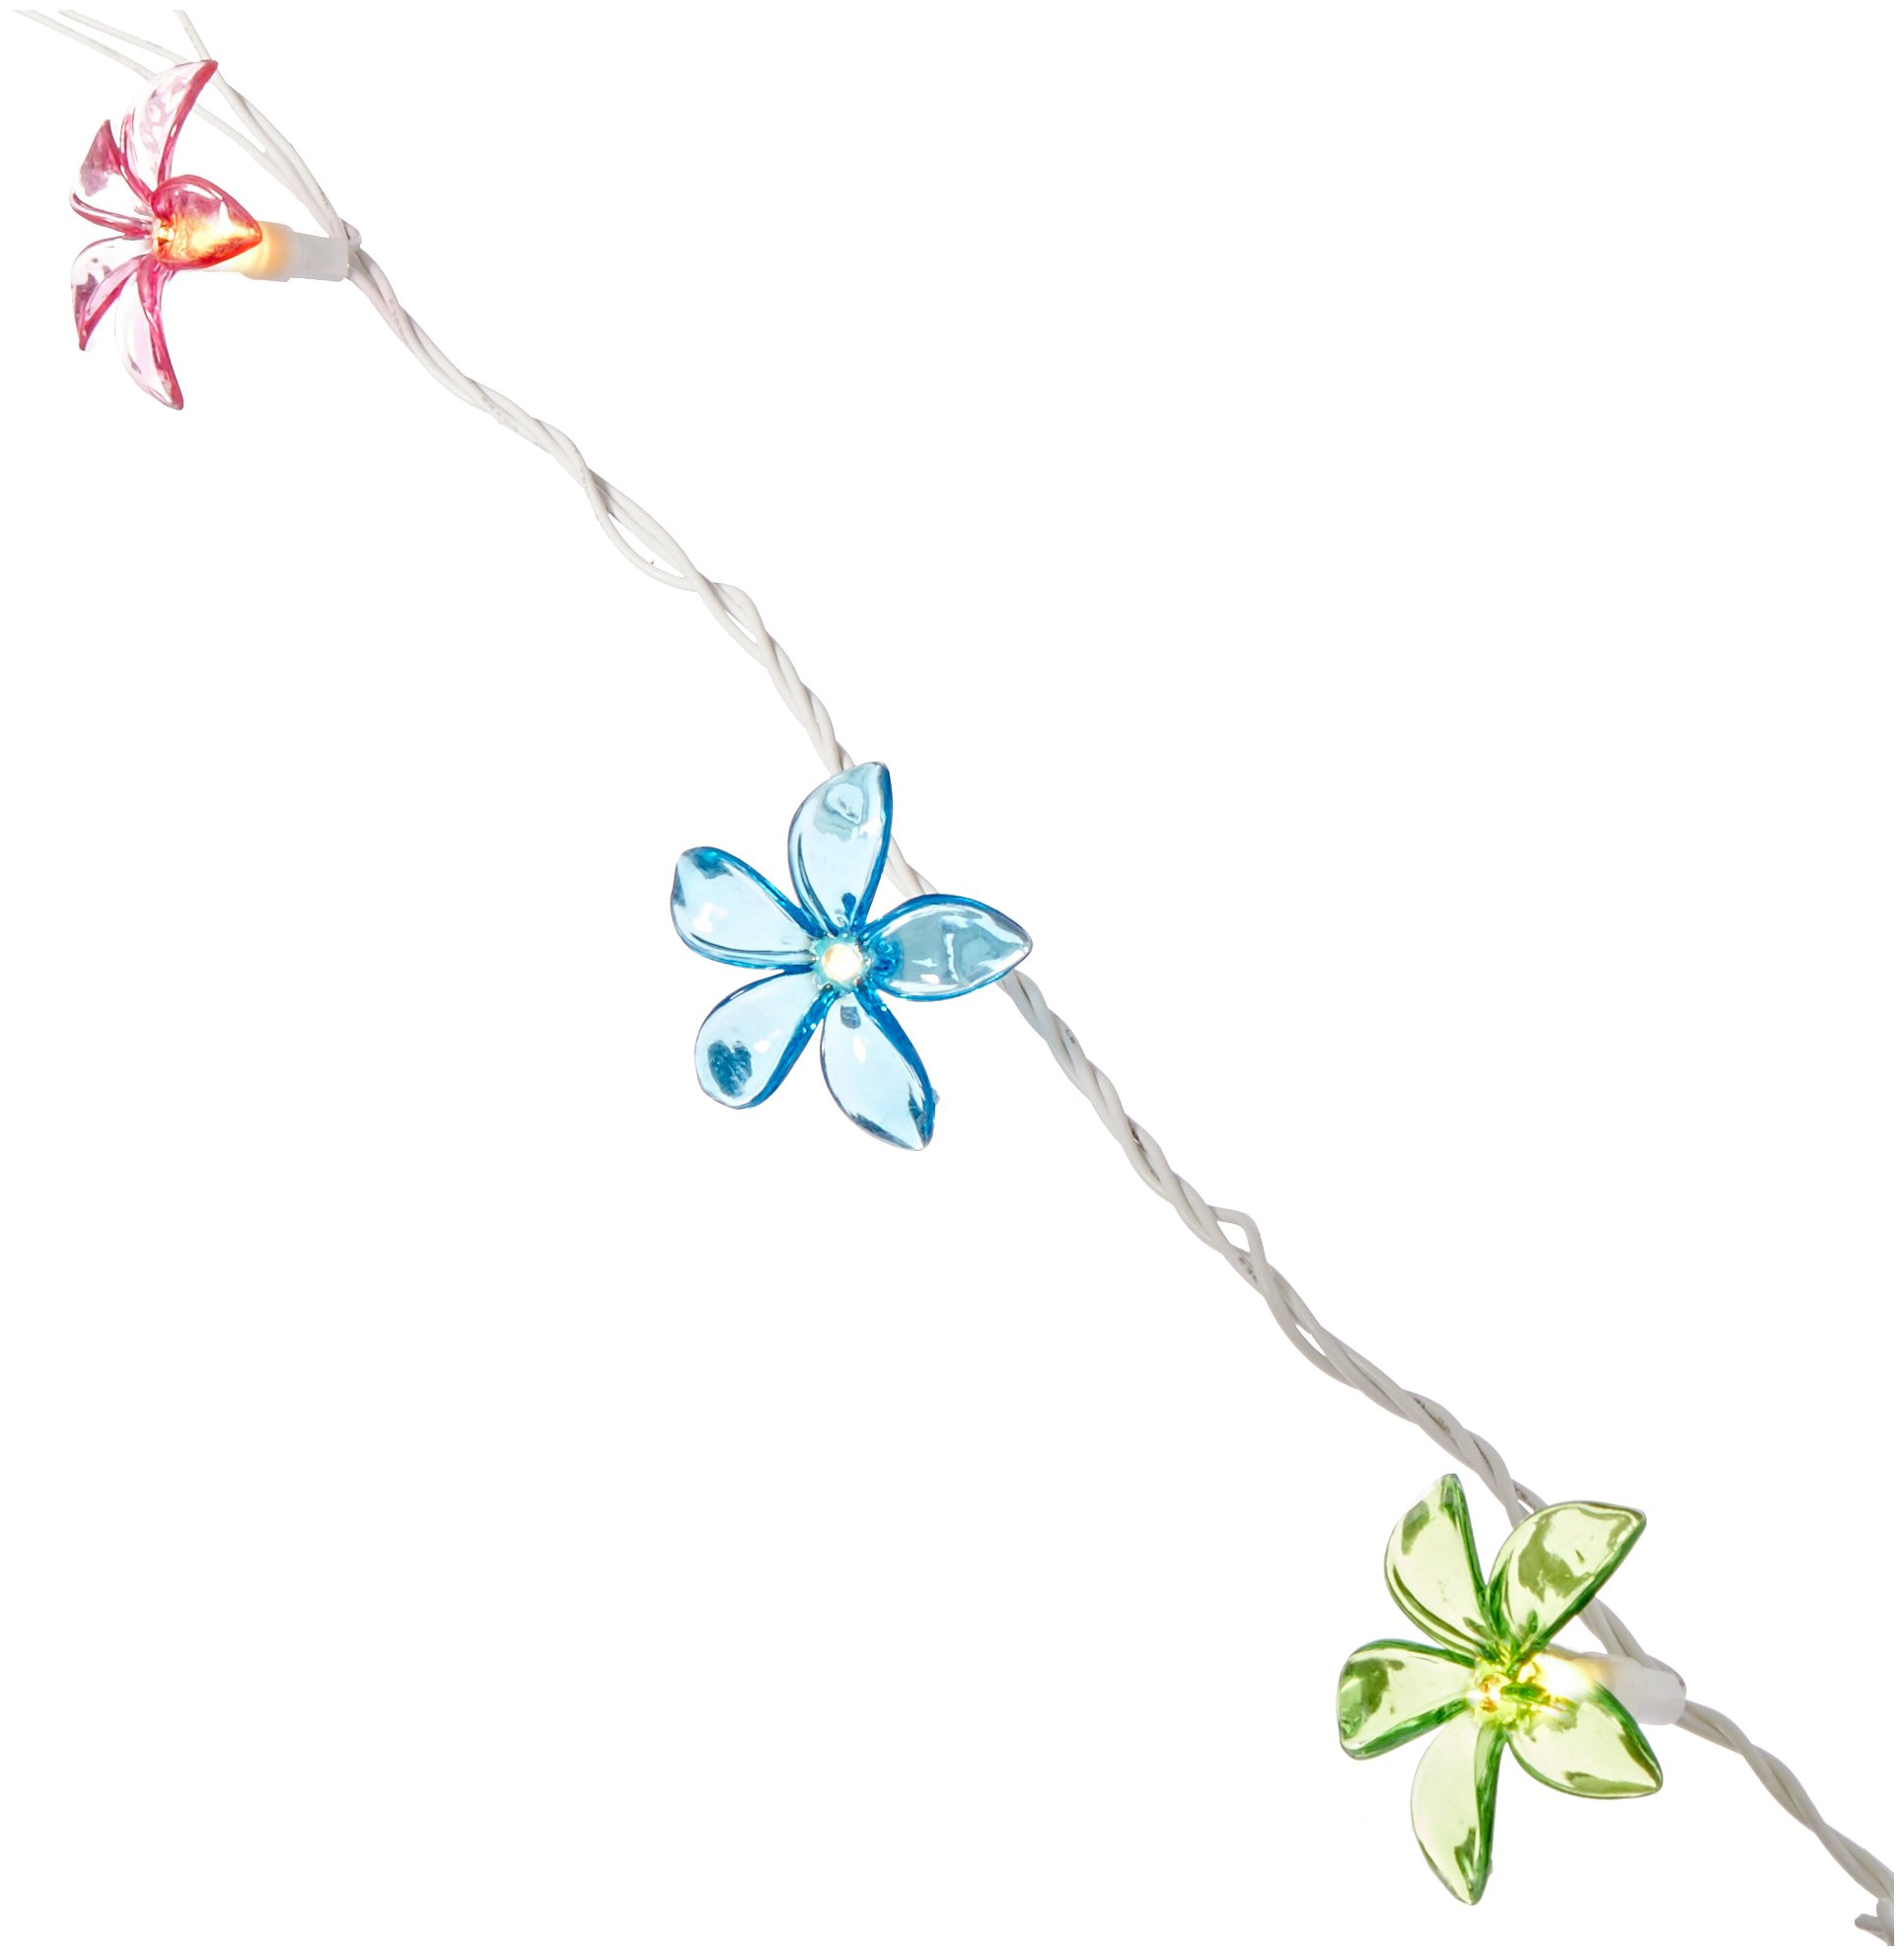 Grasslands Road Multi Color Plumeria Flower Patio Light Set, 6-Foot